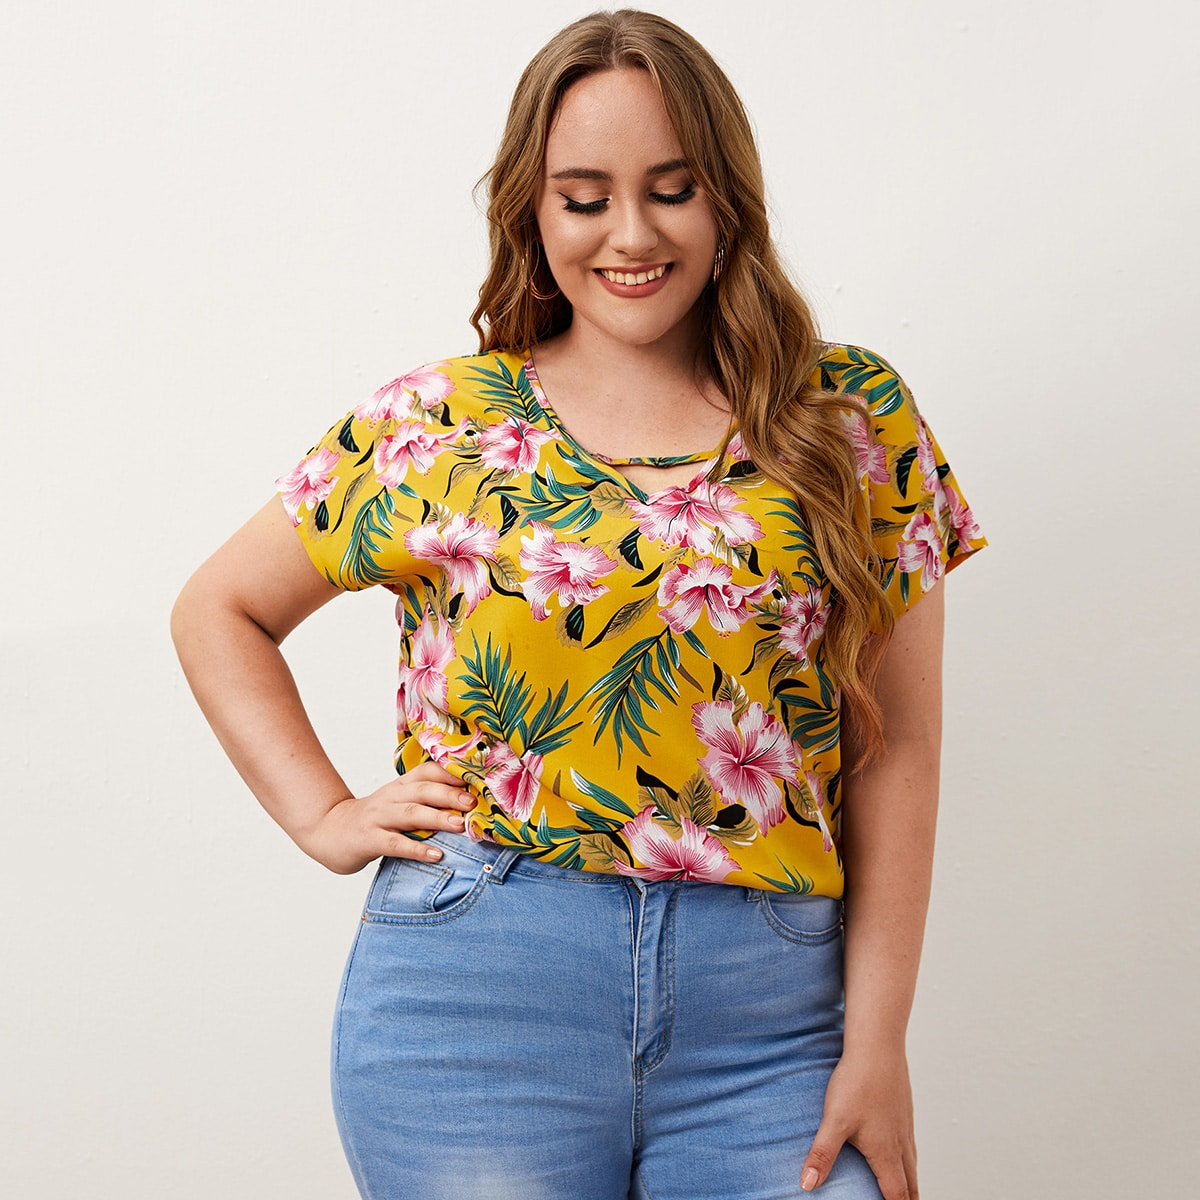 SHEIN Casual Tropisch Grote maat blouse